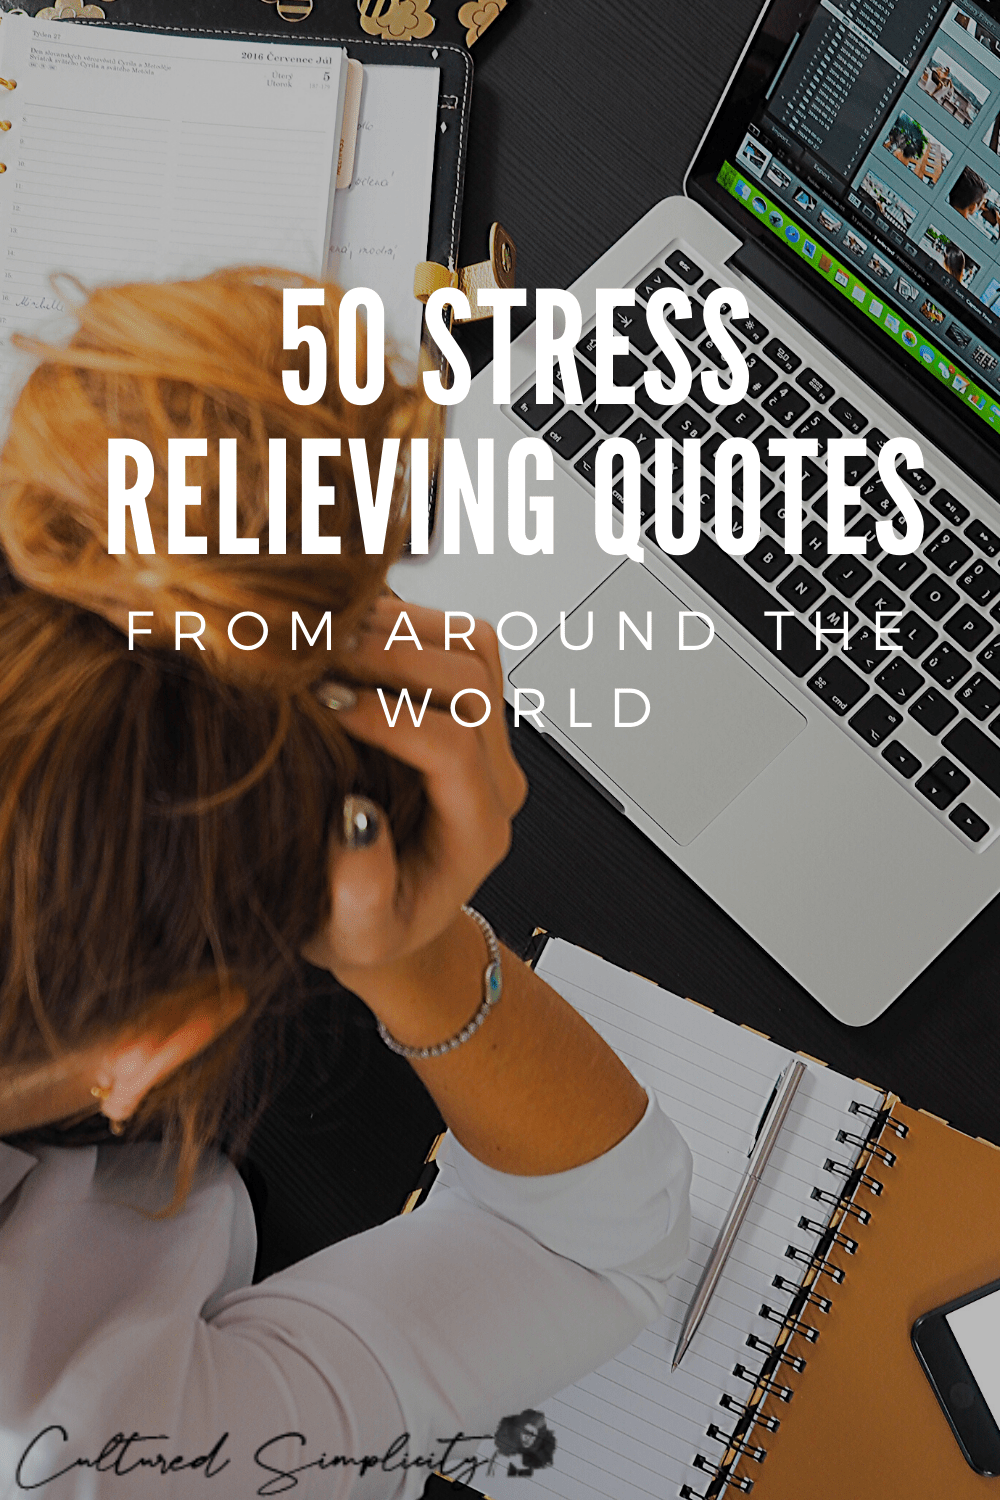 50 Stress Relief Quotes from around the world